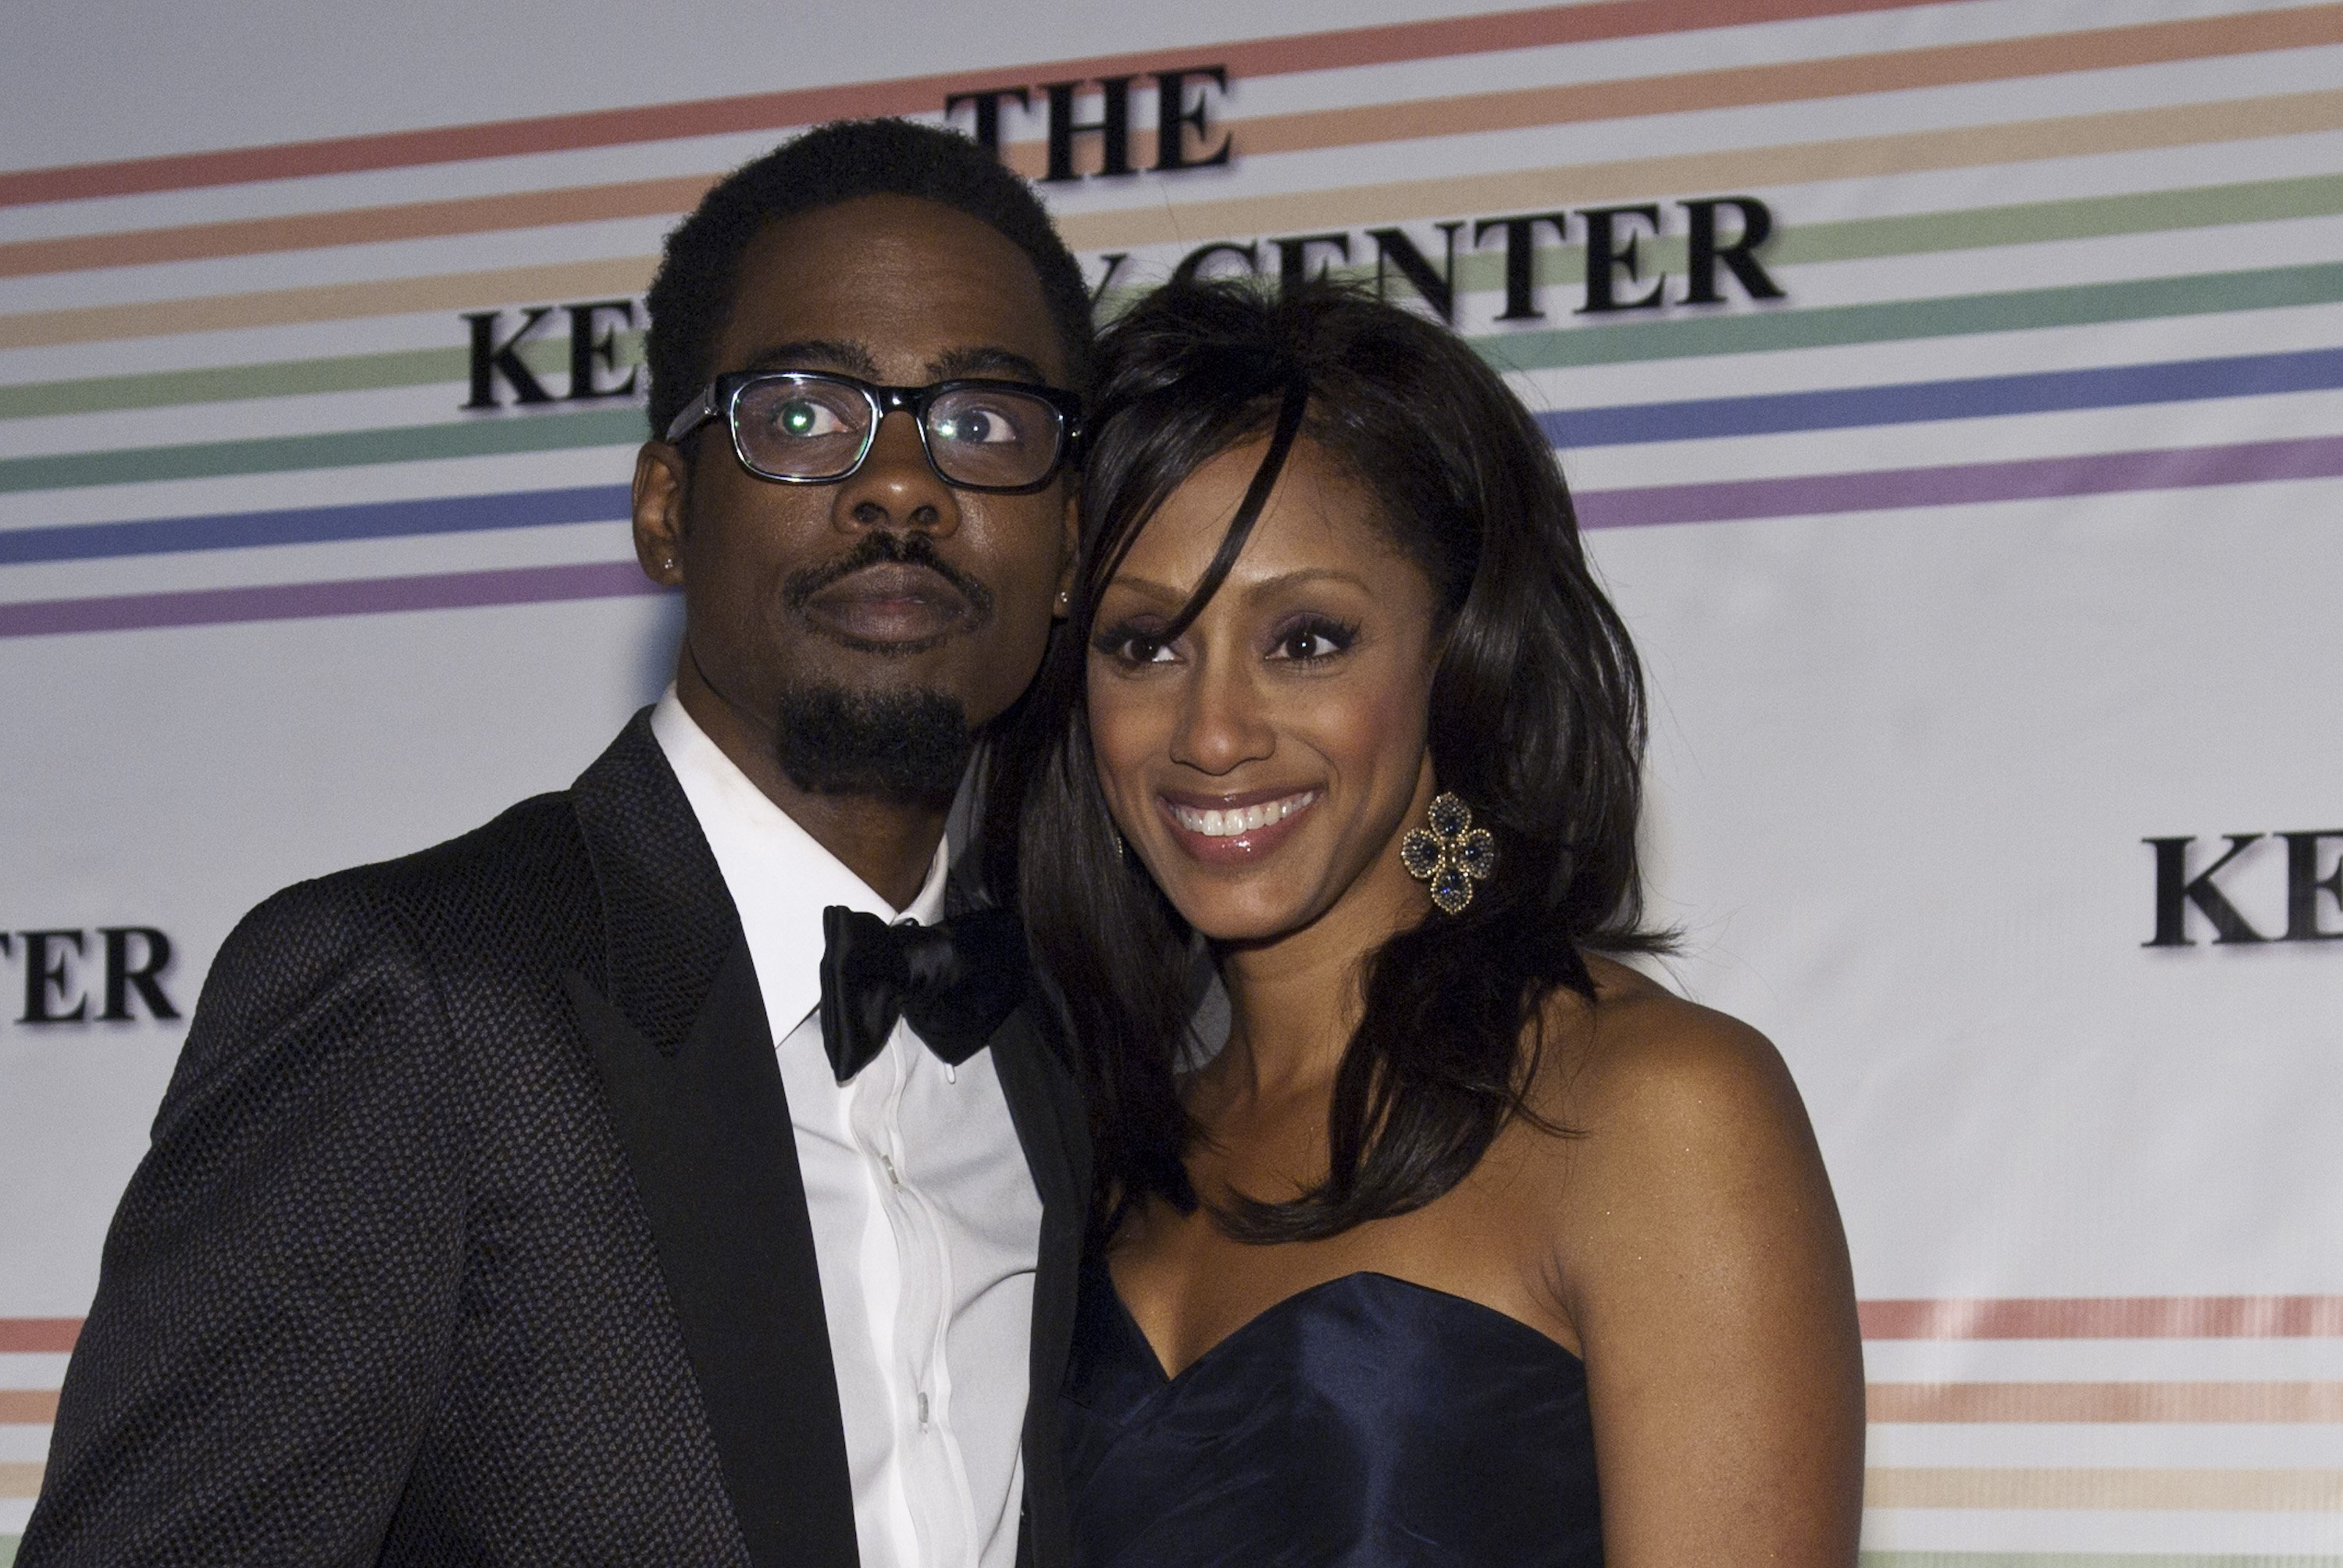 Chris Rock and Malaak Rock pose for photos during the 33rd Annual Kennedy Center on December 5, 2010 in Washington, DC.   Source: Getty Images